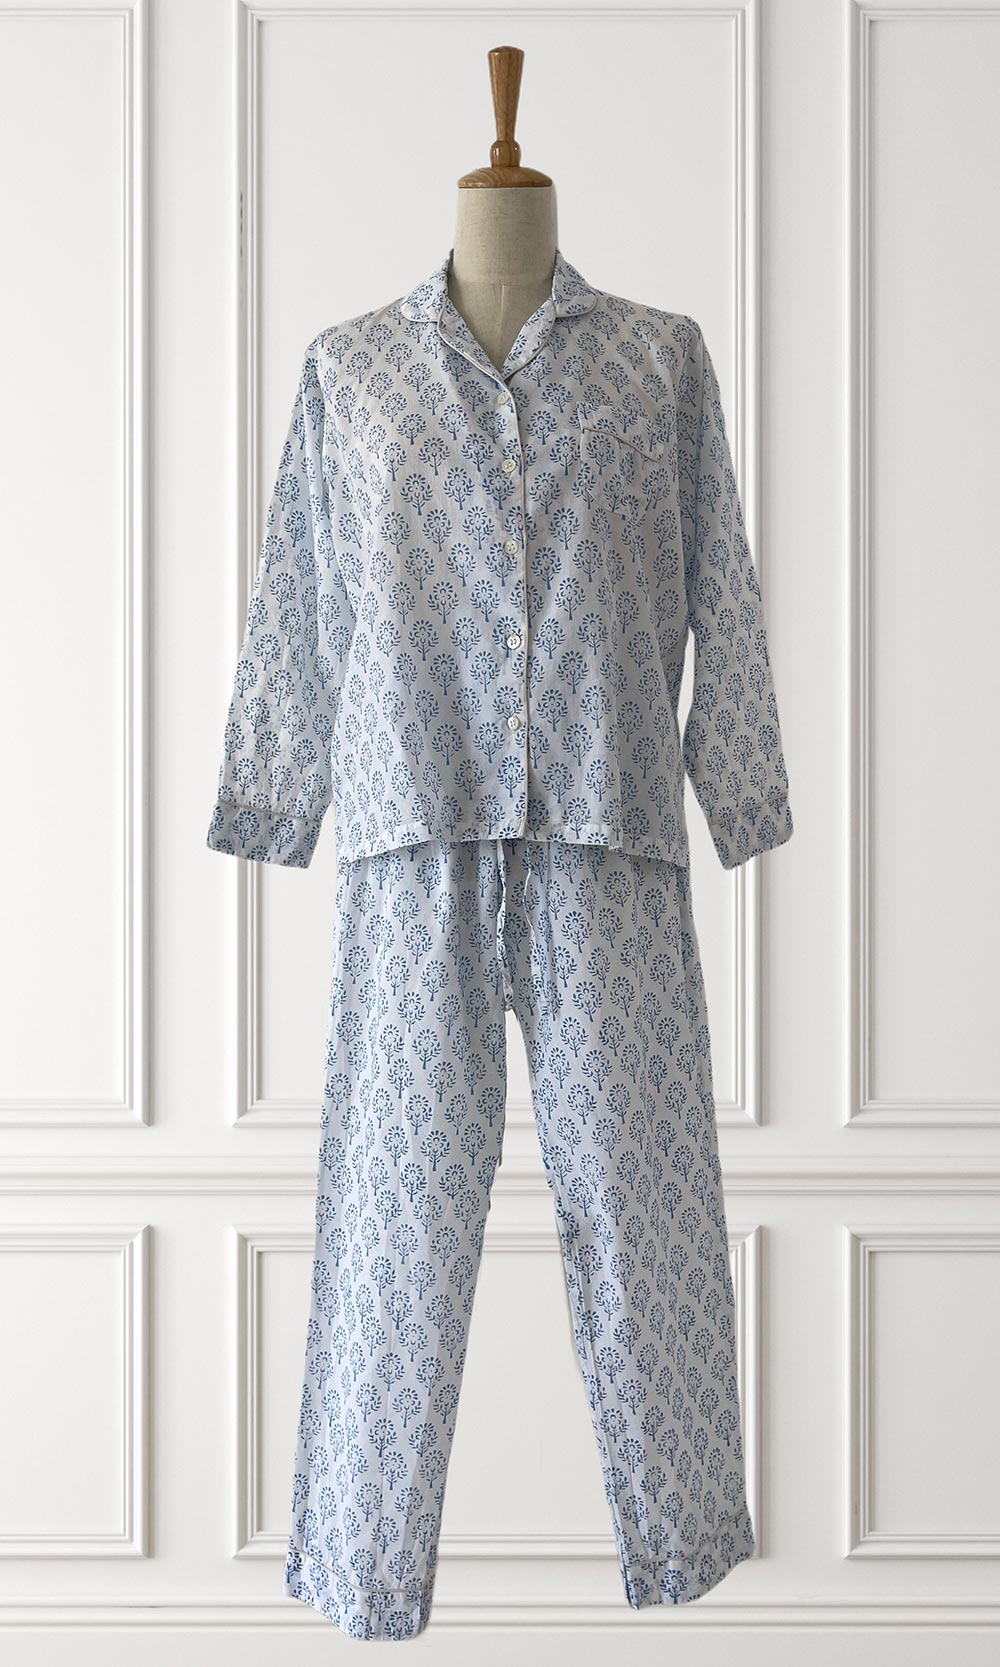 Hand Block Printed Indian Cotton Blue White Pyjamas